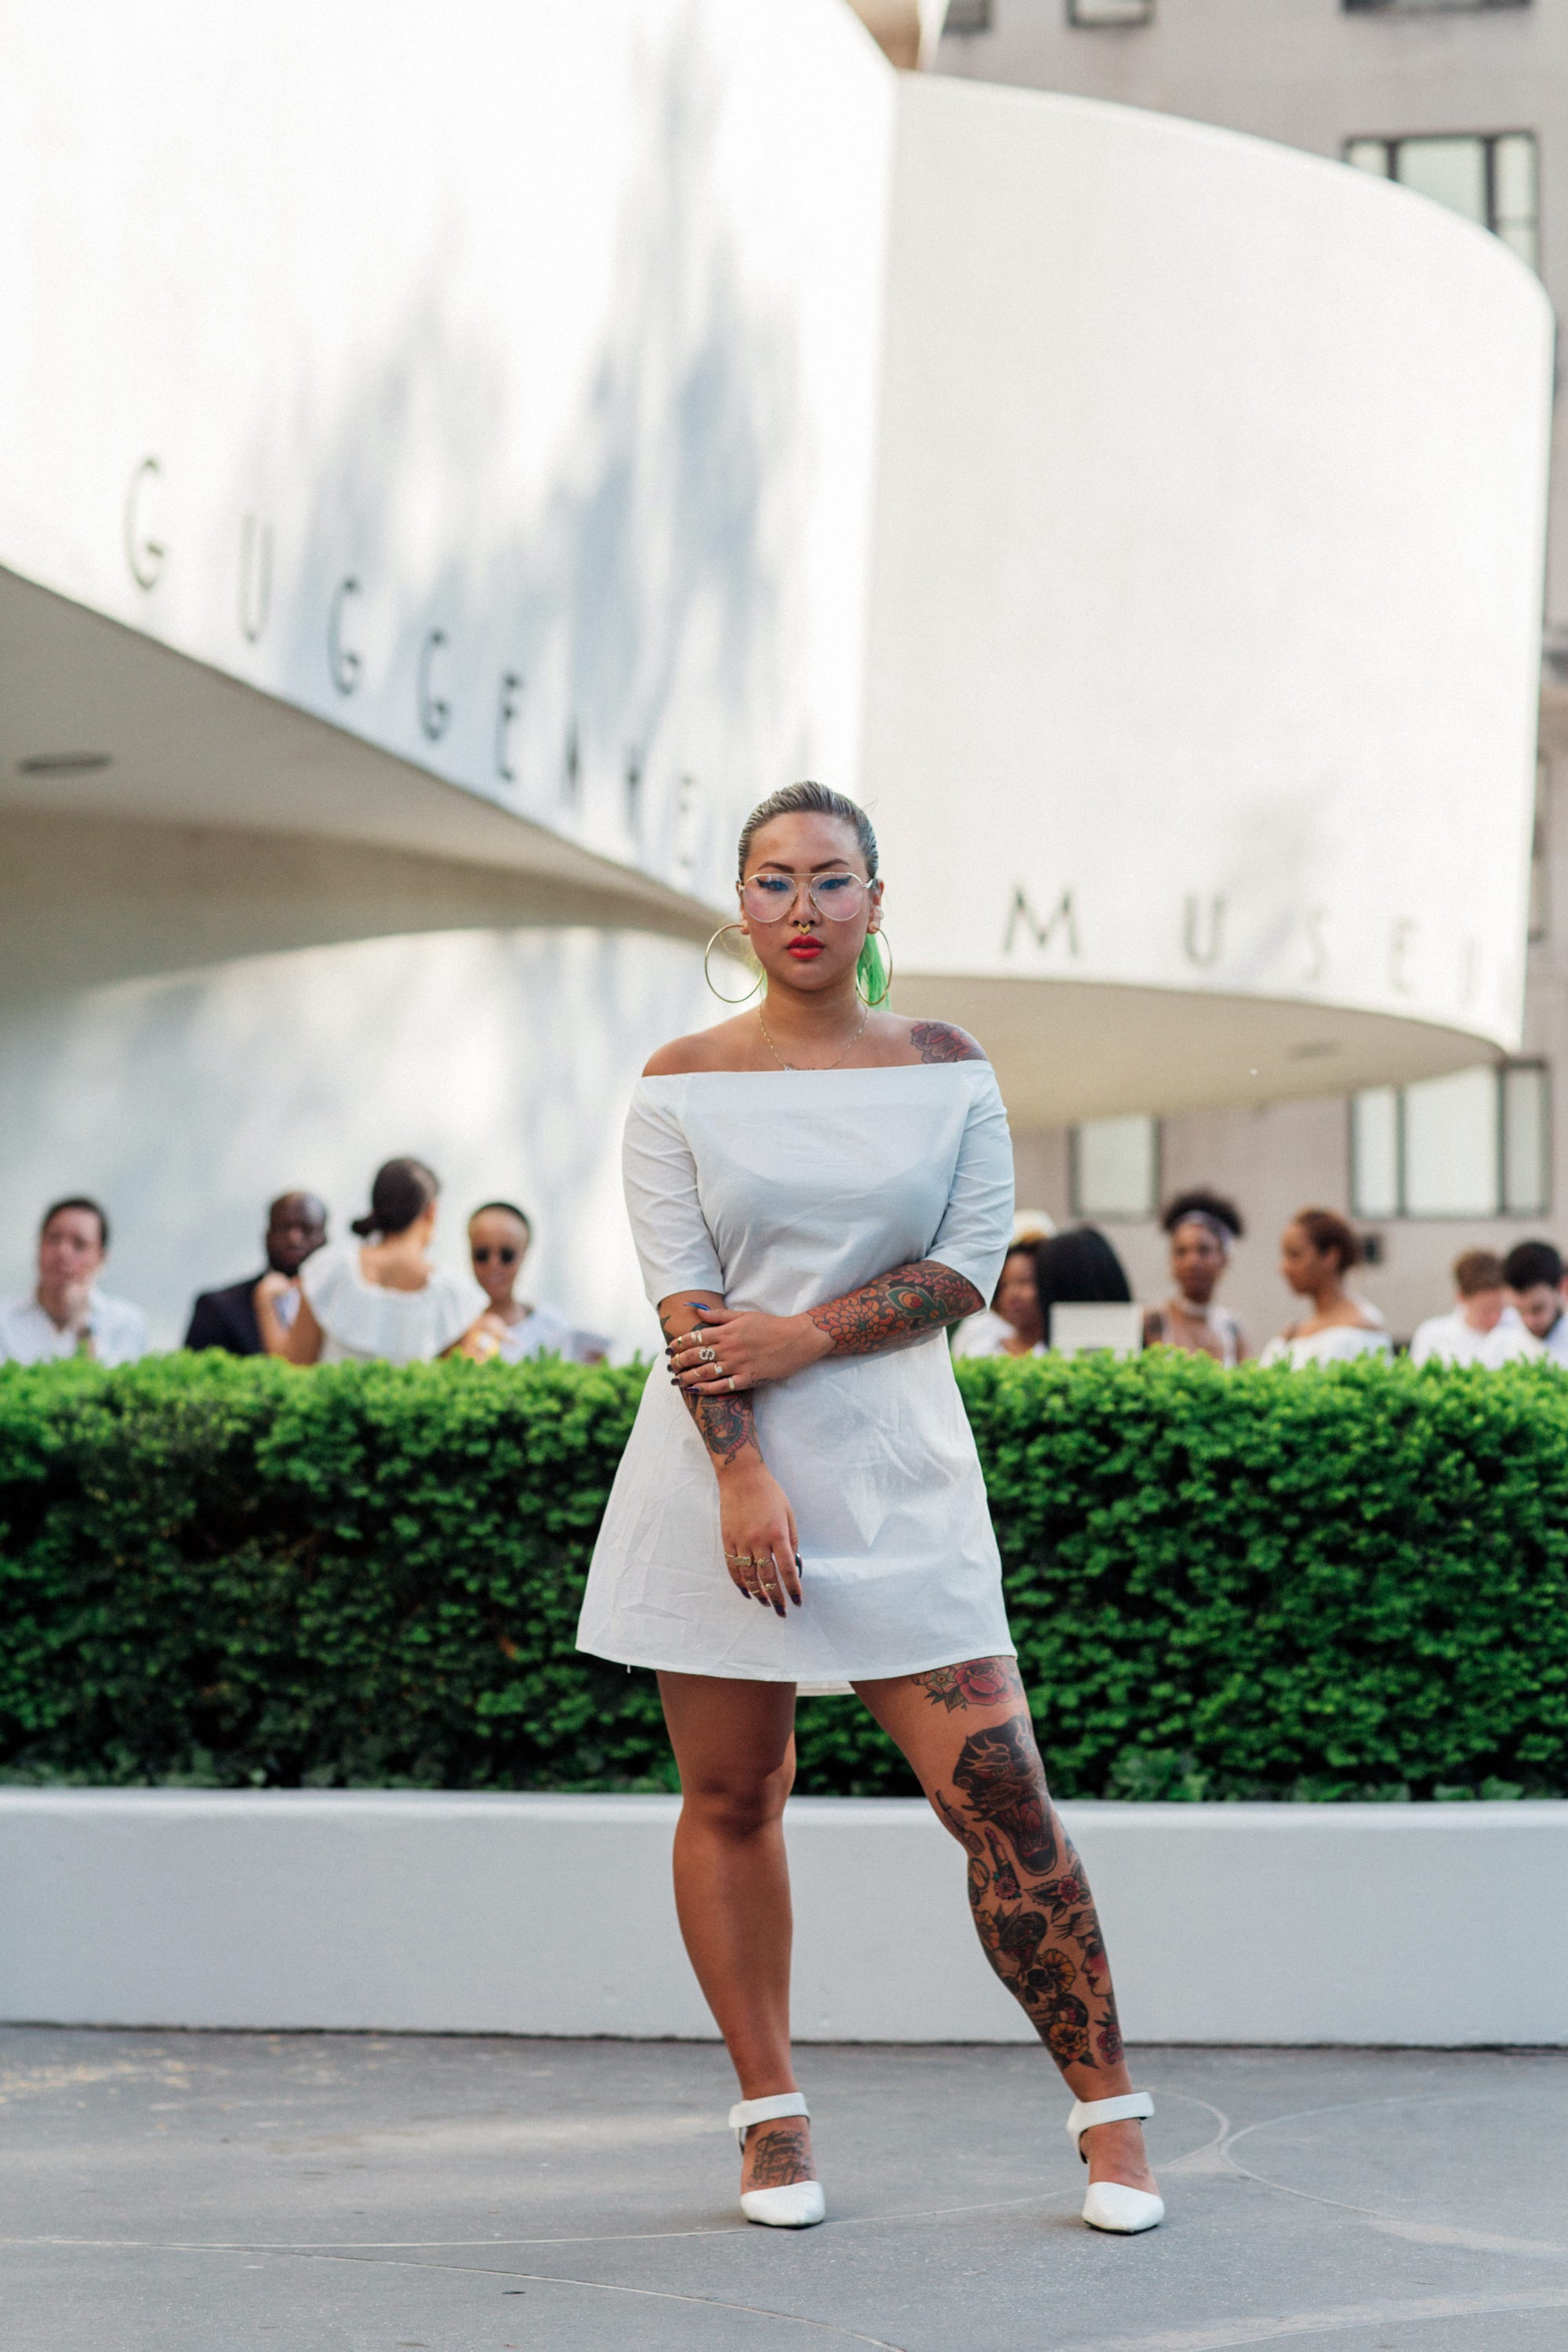 cd09d2b8812 Solange Knowles Concert Street Style All White Outfits